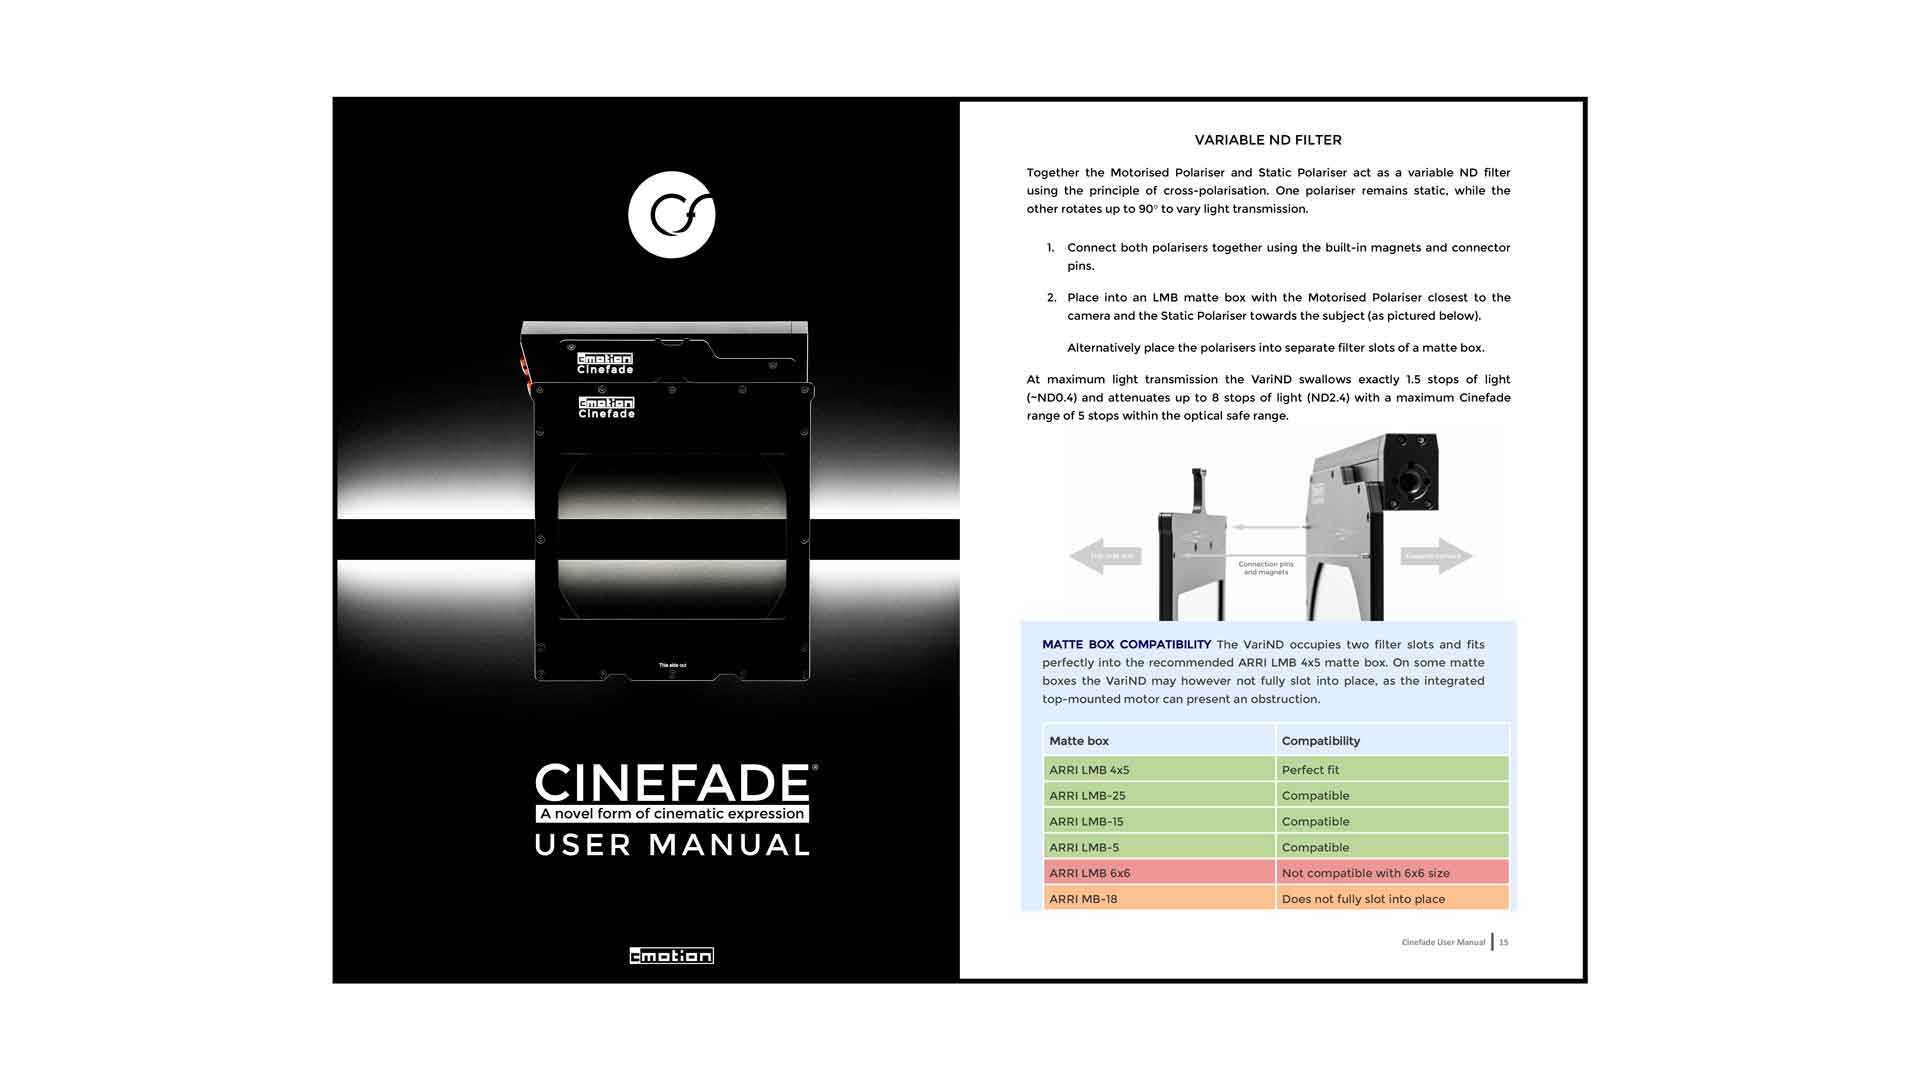 Cinefade-Hire-Our-User-Manual-web.jpg